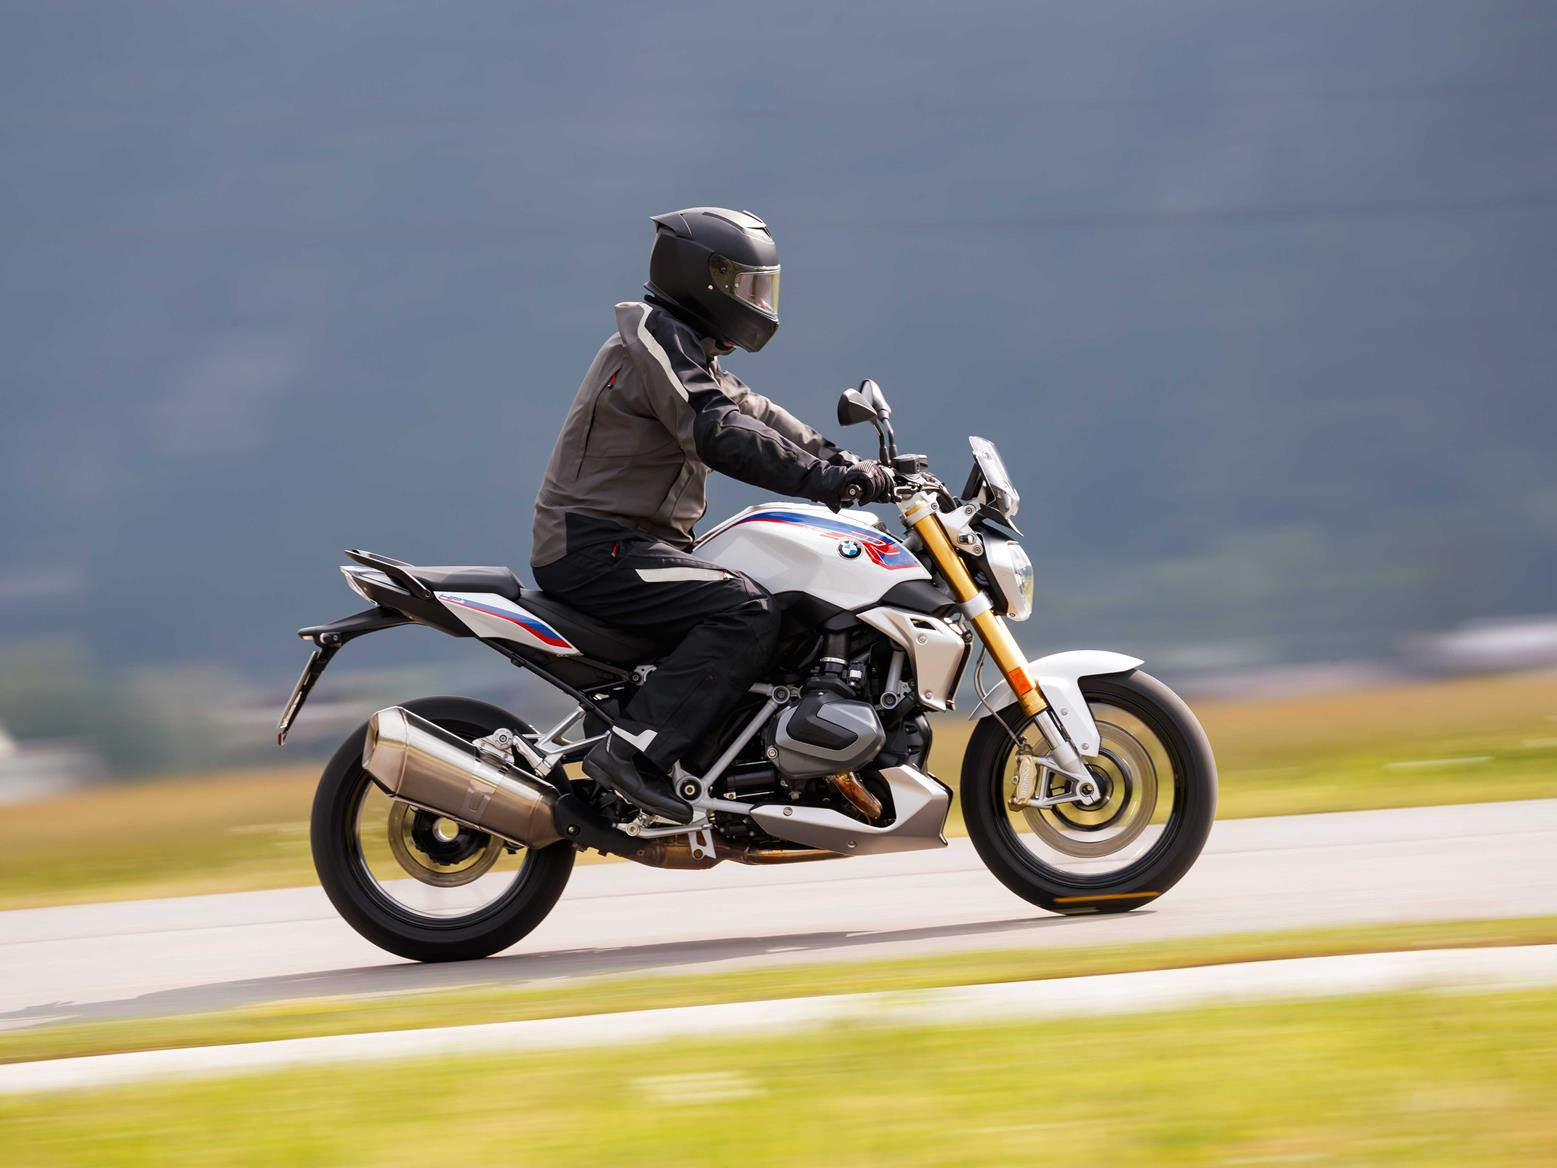 The BMW R1250R has always been ender-rated, but it is a very capable motorcycle